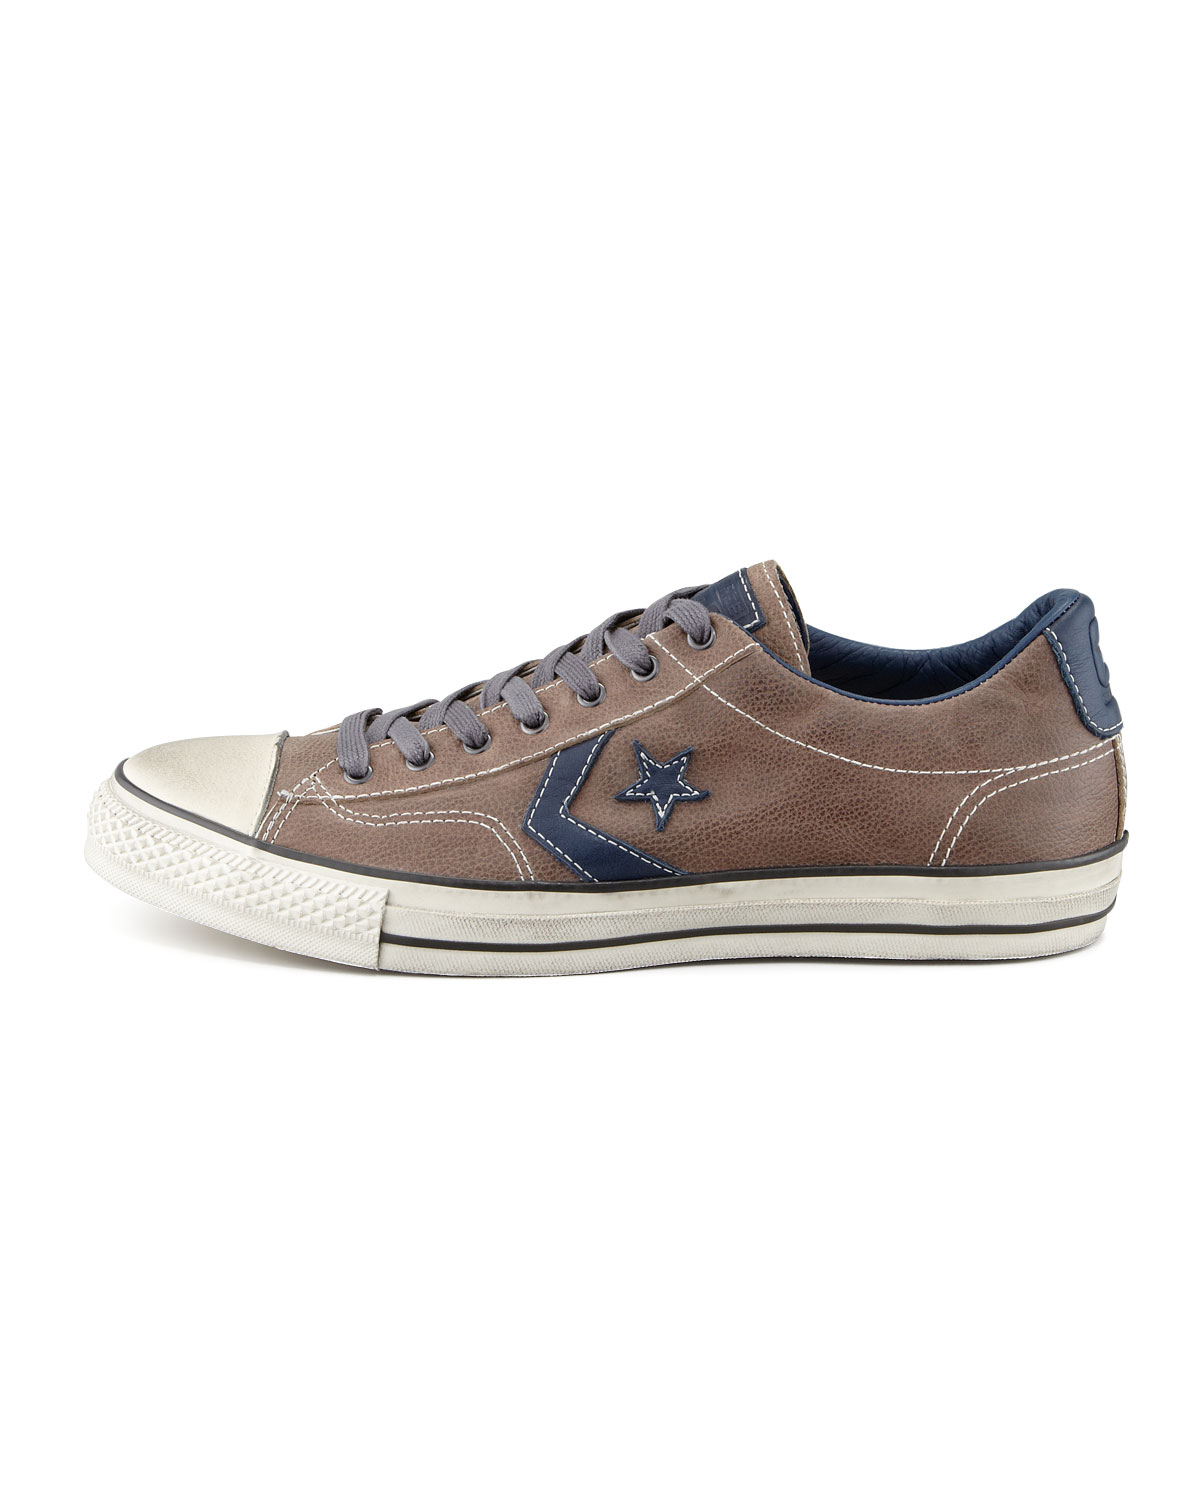 Converse Natural Leather Star Player Ev Lowtop Sneaker Brownblue for men